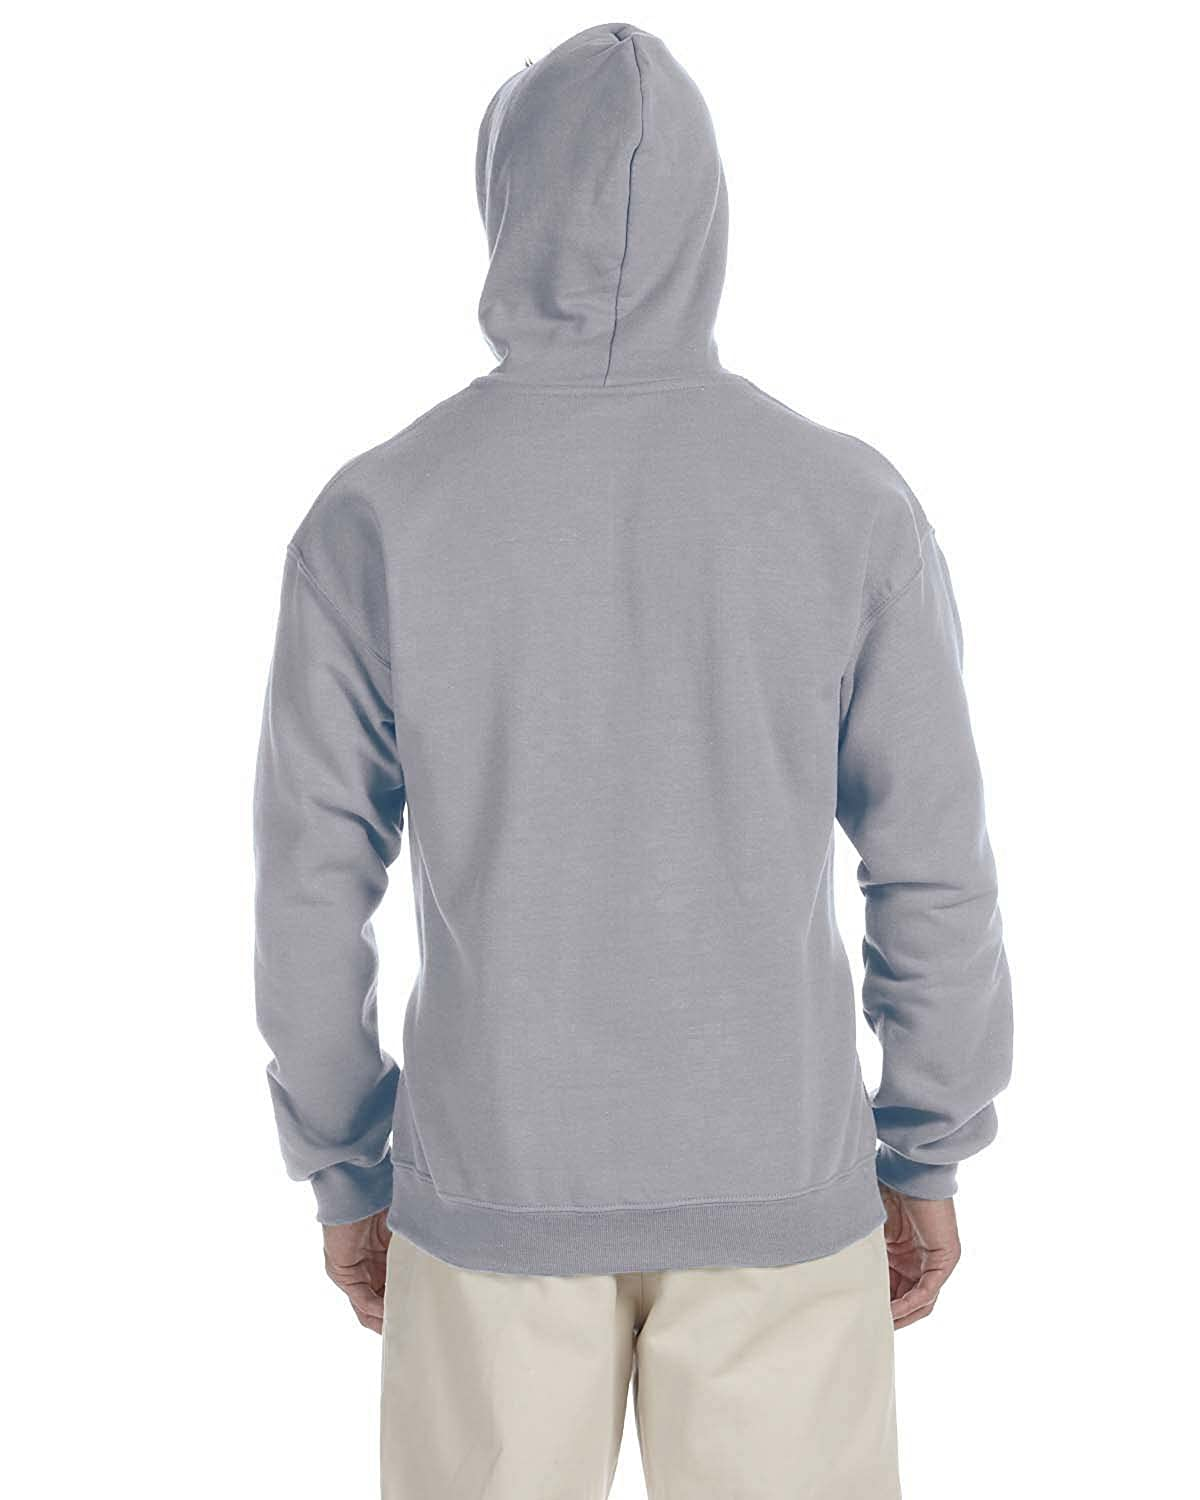 -SPORT GREY -2XL-12PK G185C Heavy Blend Contrast Hood Gildan Mens 7.75 oz